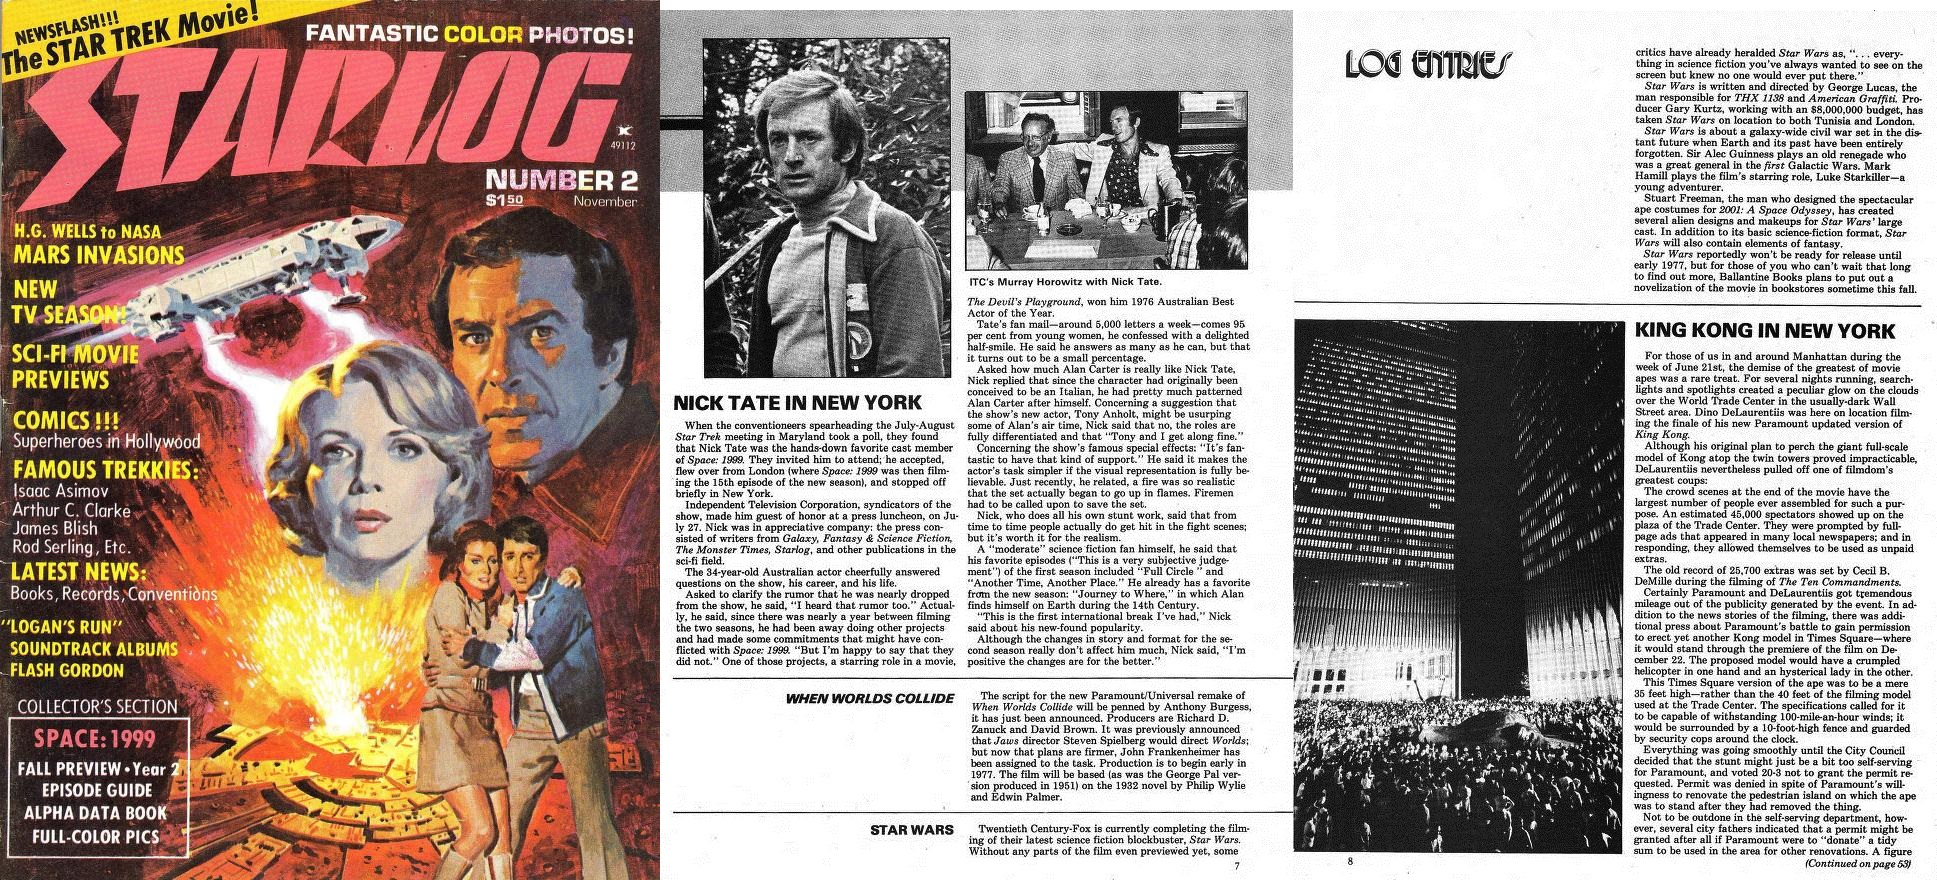 November 1976 Issue of Starlog Magazine, which featured a short log entry announcing the production of  Star Wars  - via BattleGrip.com